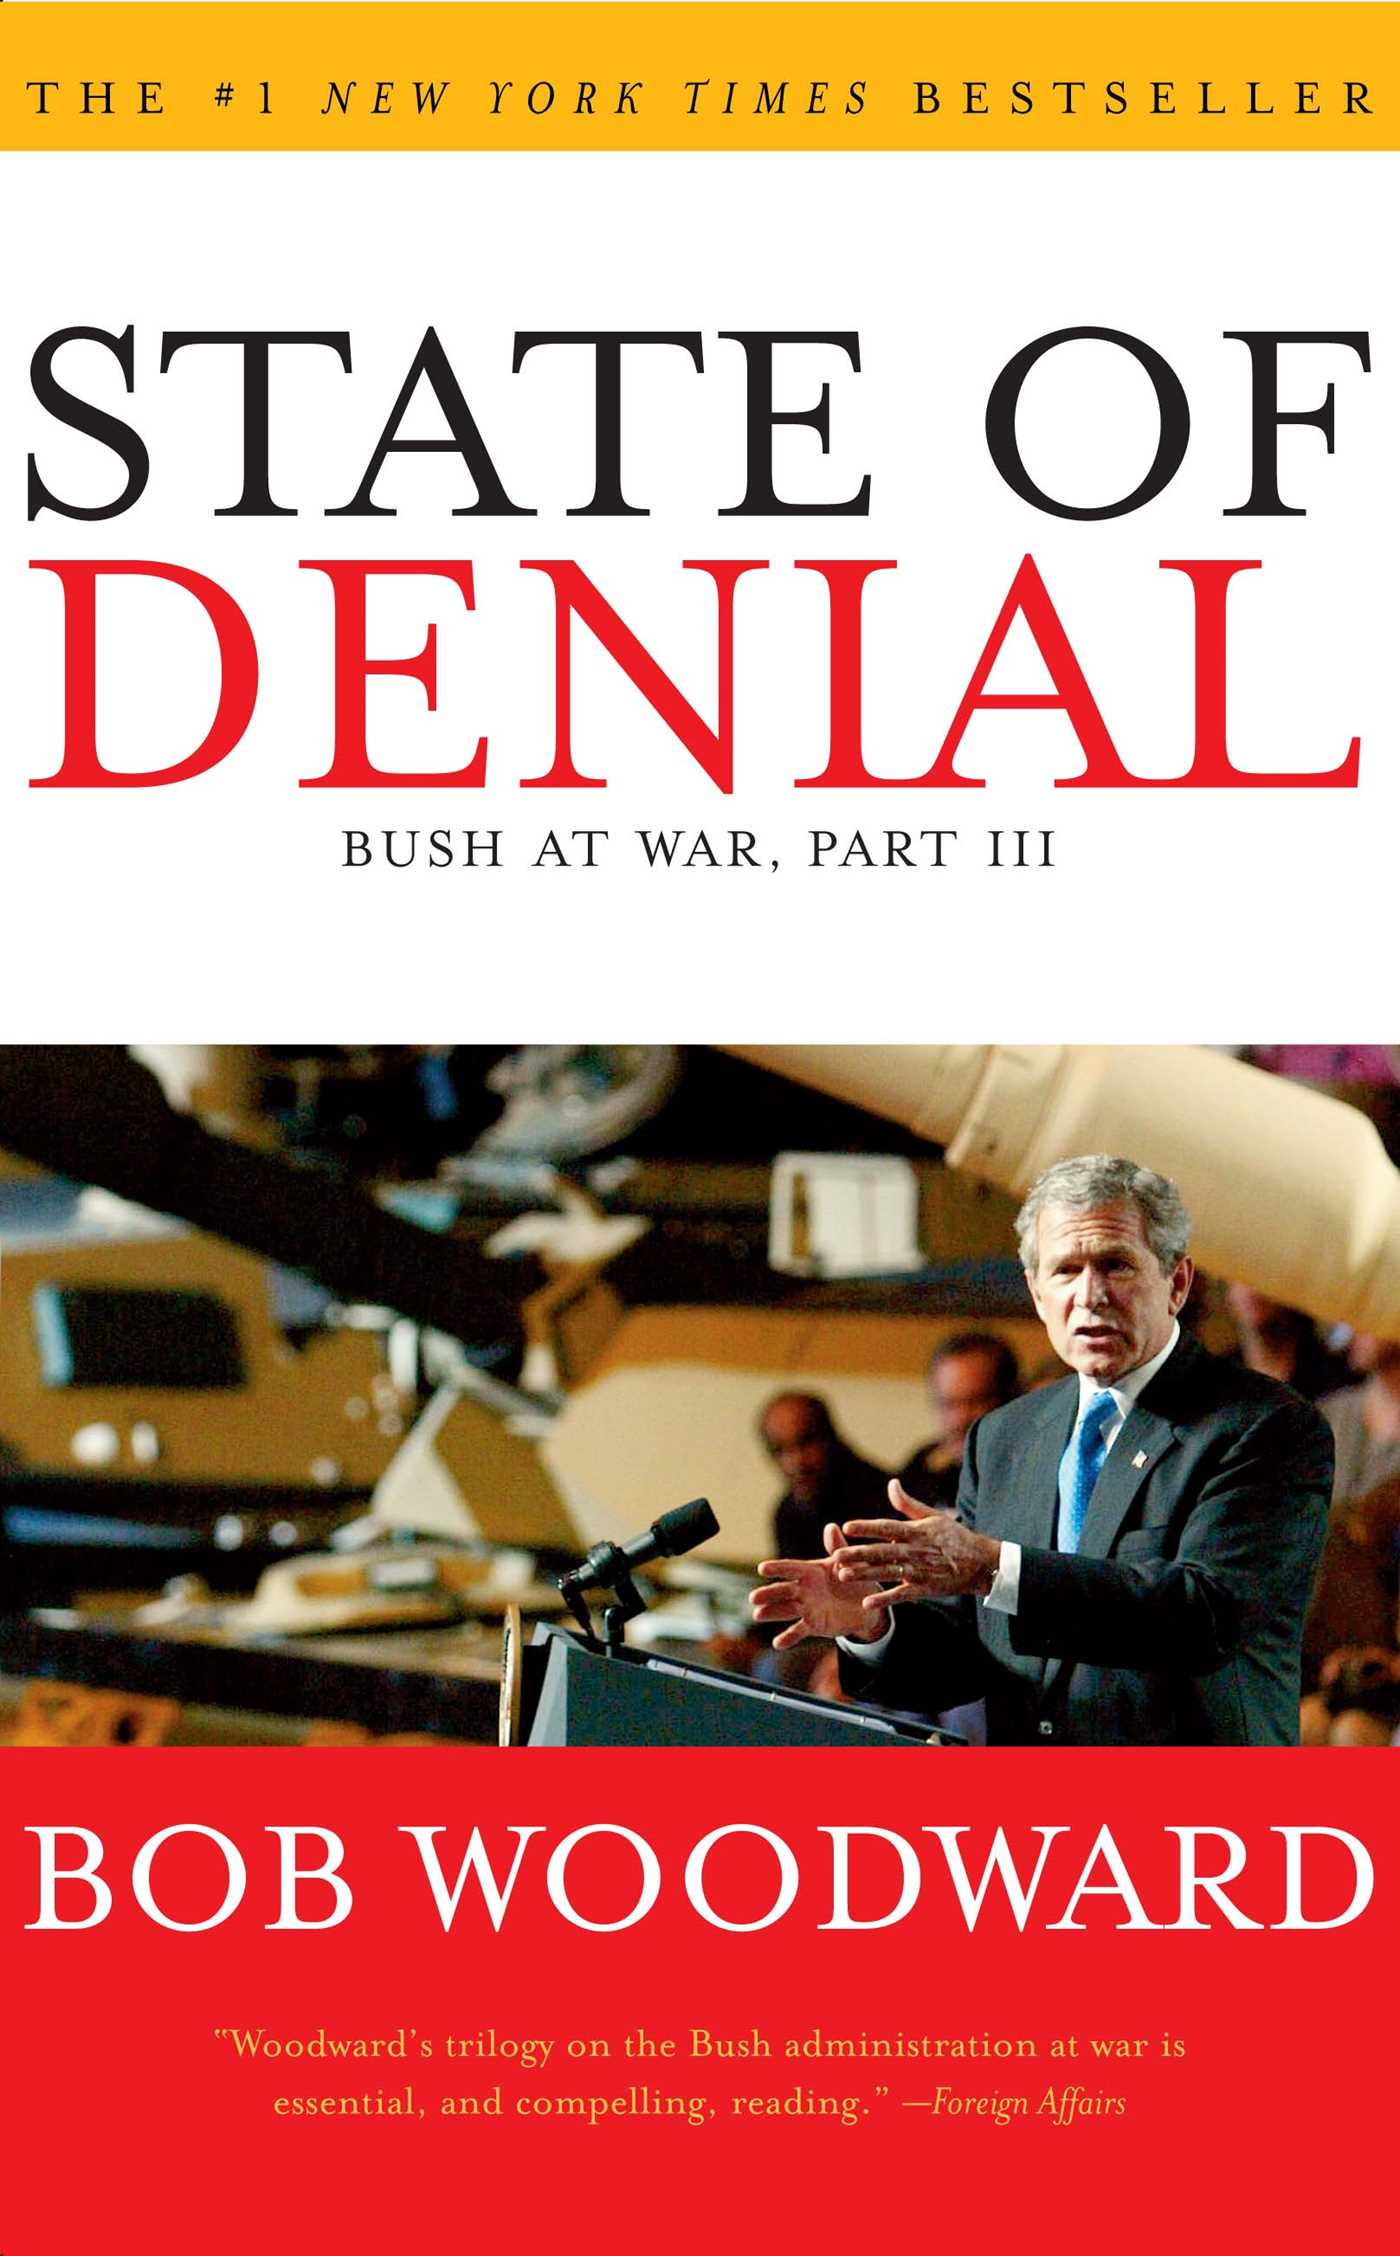 State of denial 9780743272247 hr